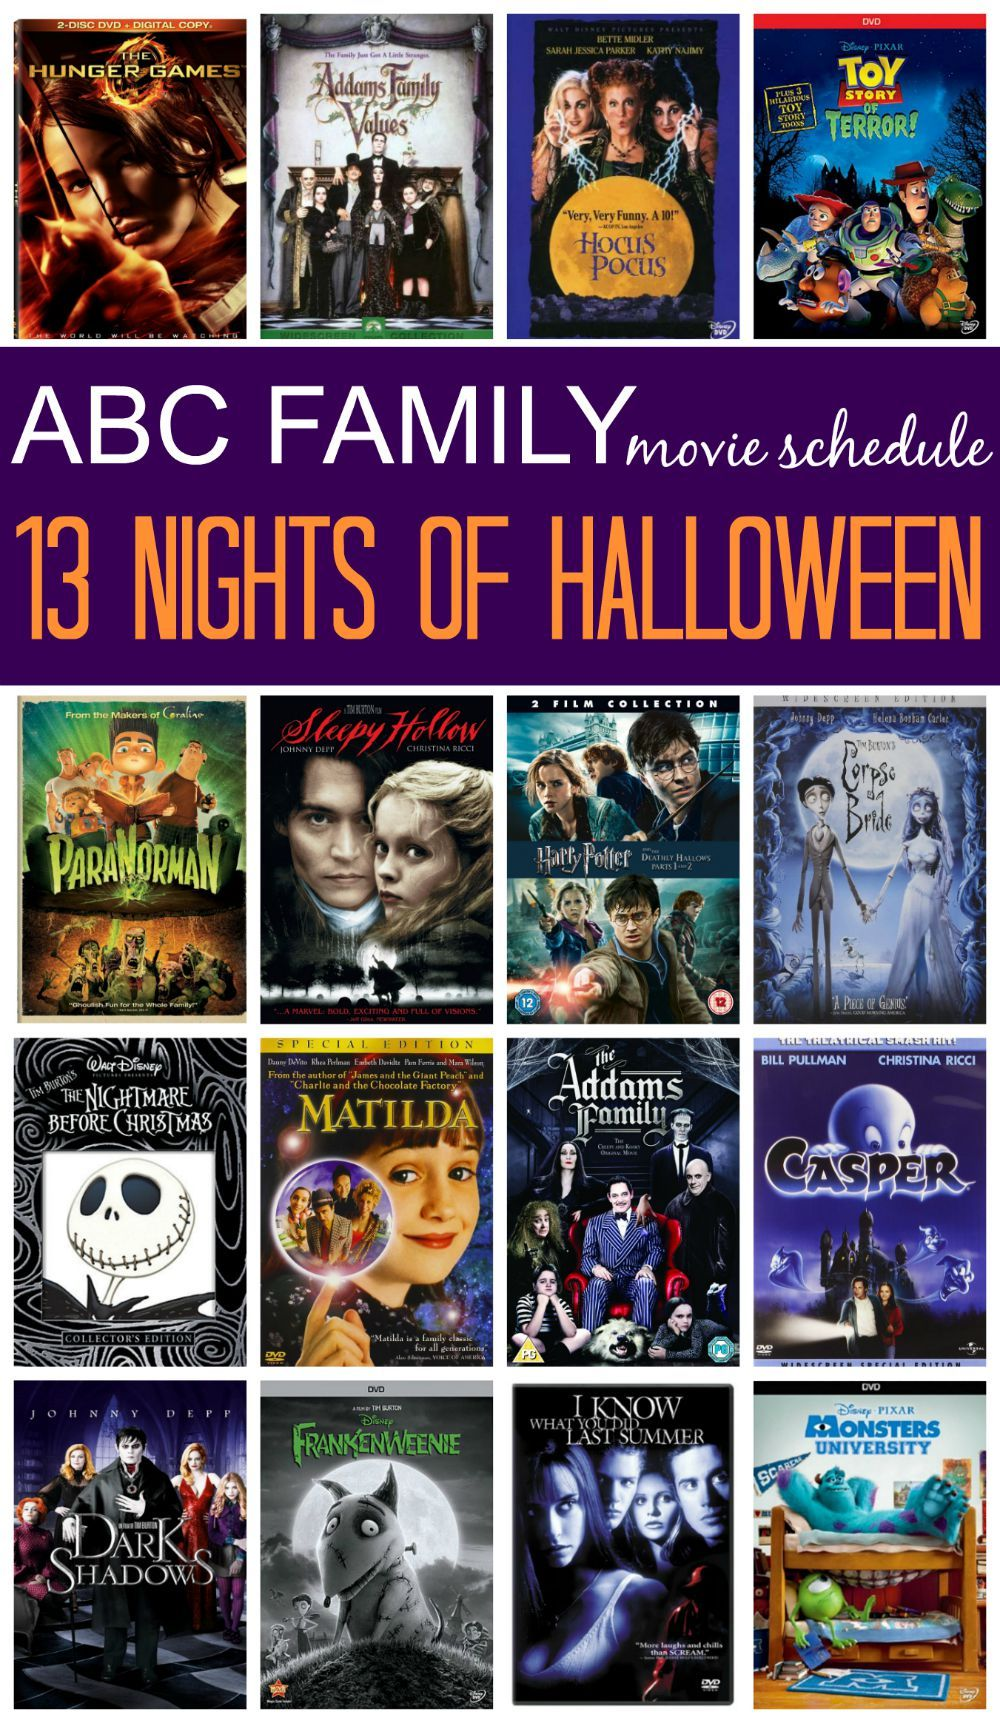 2015 abc family 13 nights of halloween movie schedule on frugal coupon living watch halloween movies on abc this fall